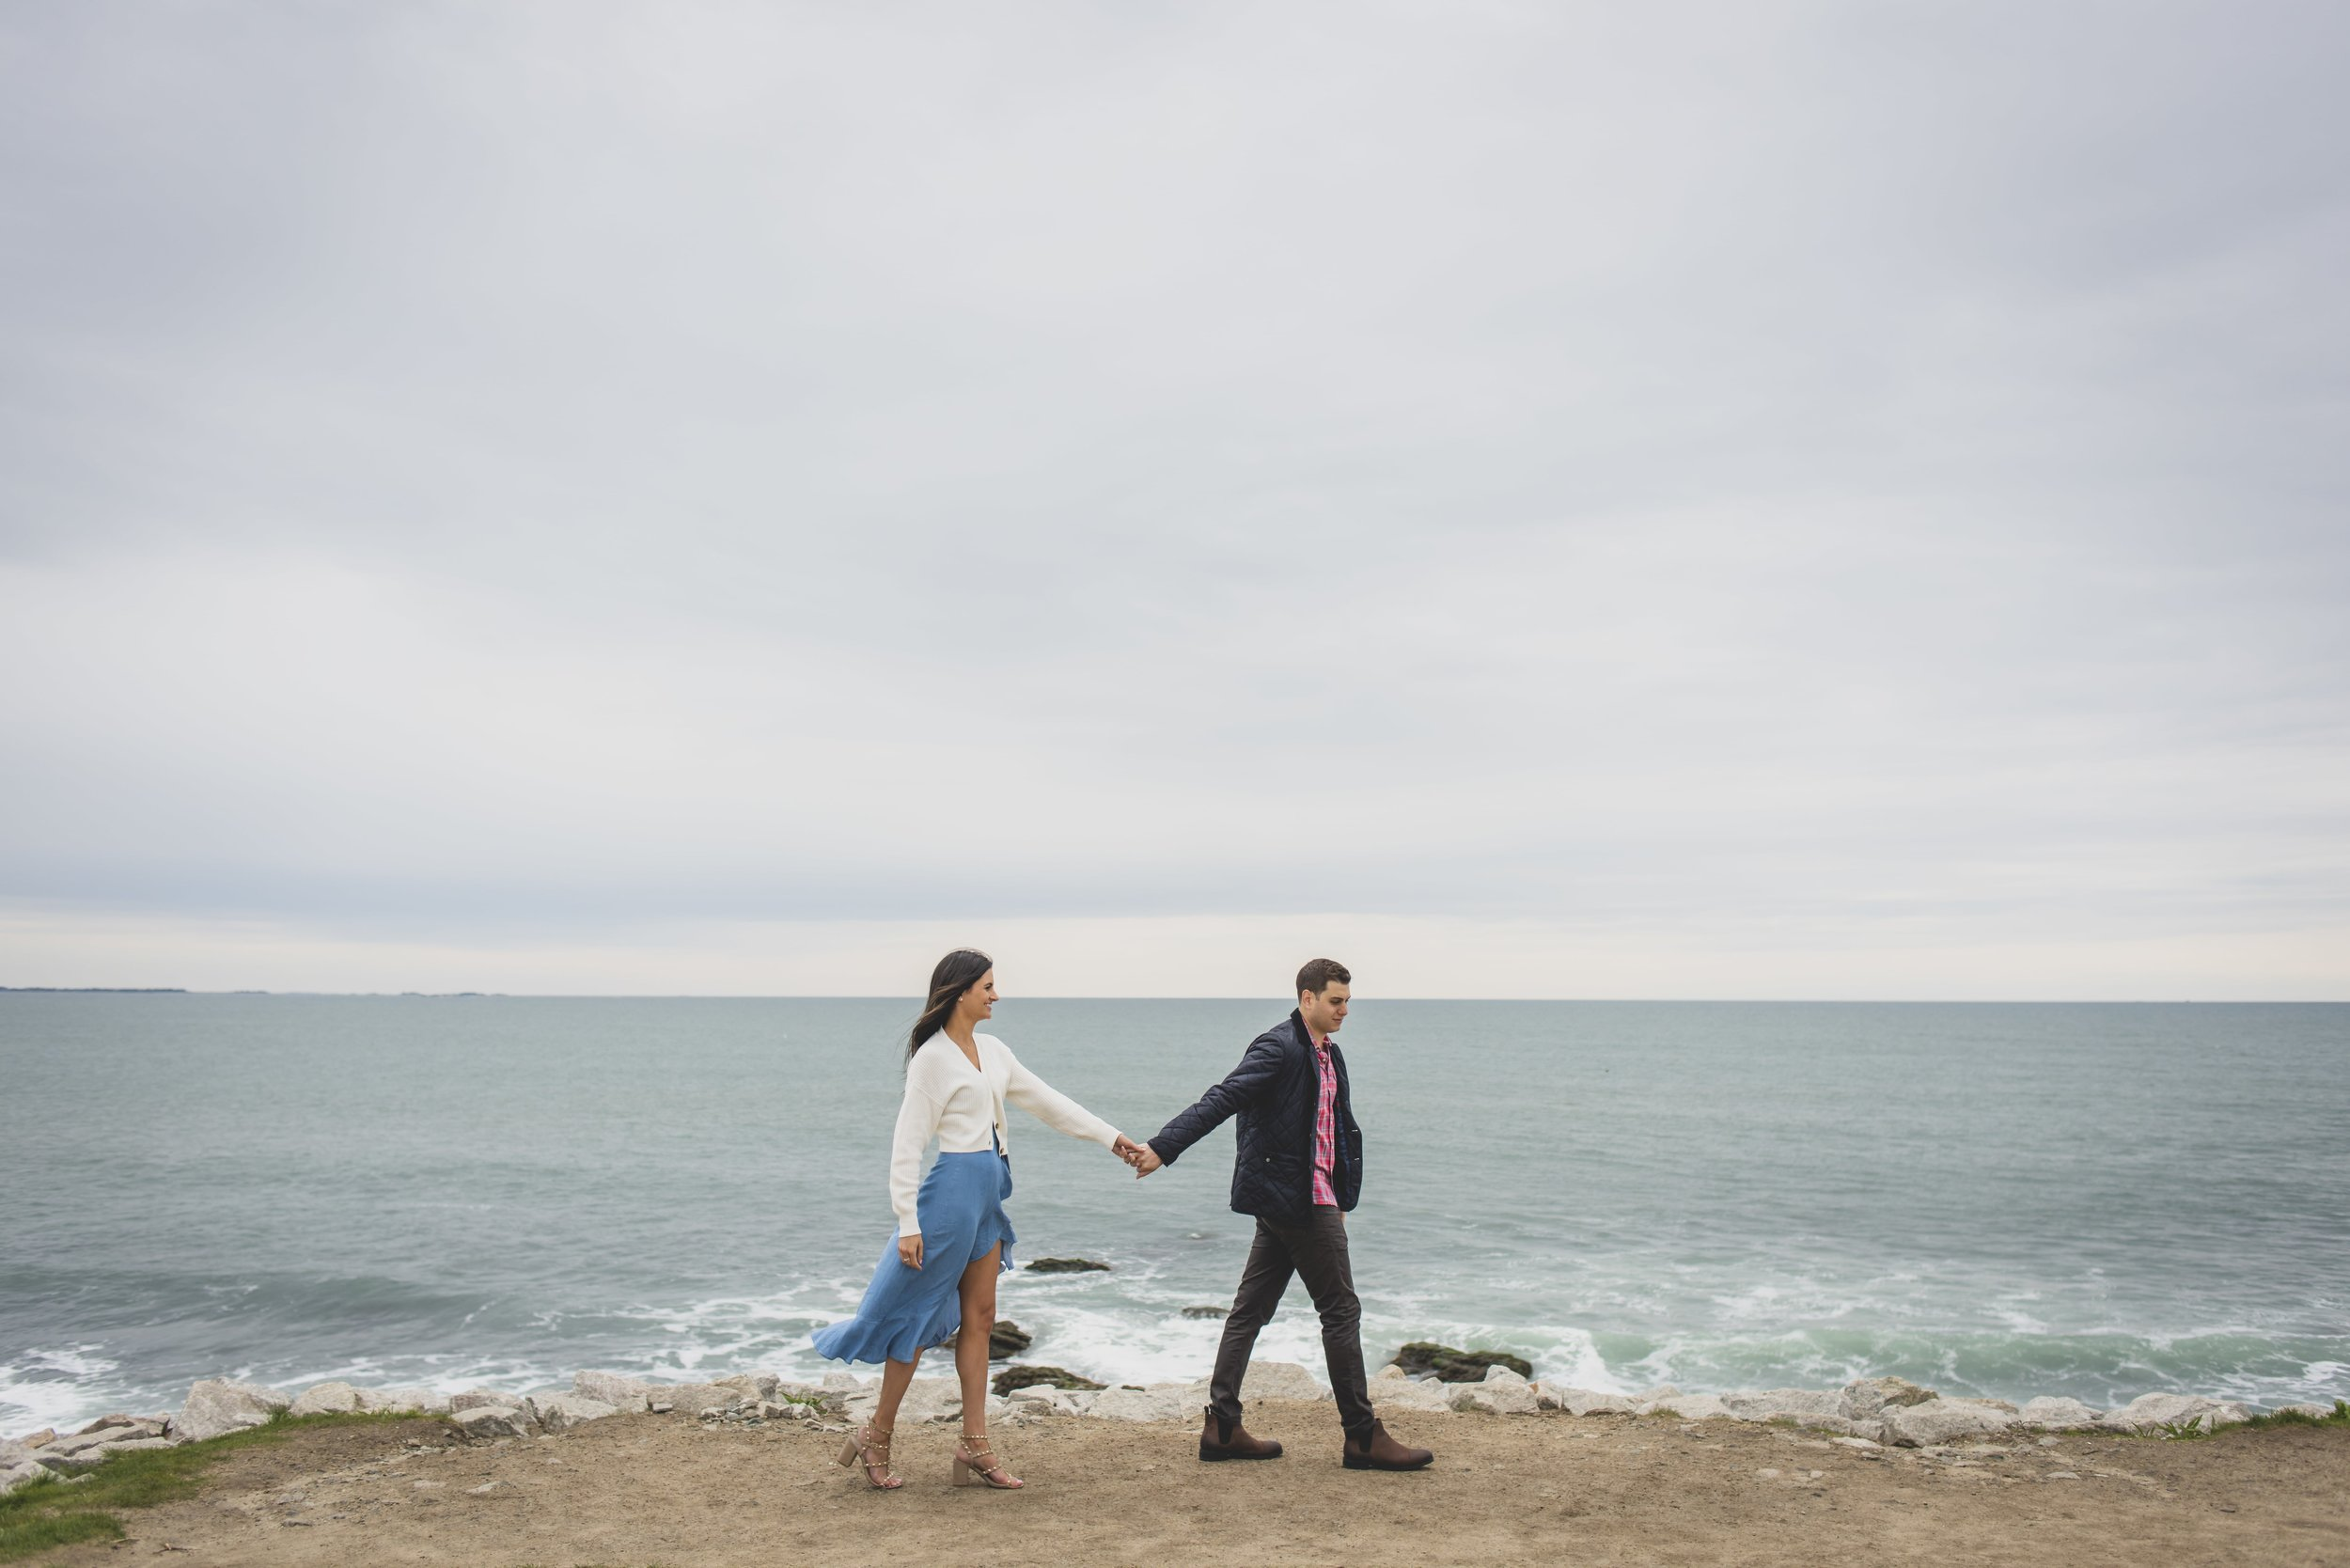 Engagement Photography Services - Castle Hill Lighthouse, Newport, RI - Future groom leading future bride by the hand along the shoreline with the ocean in the background.